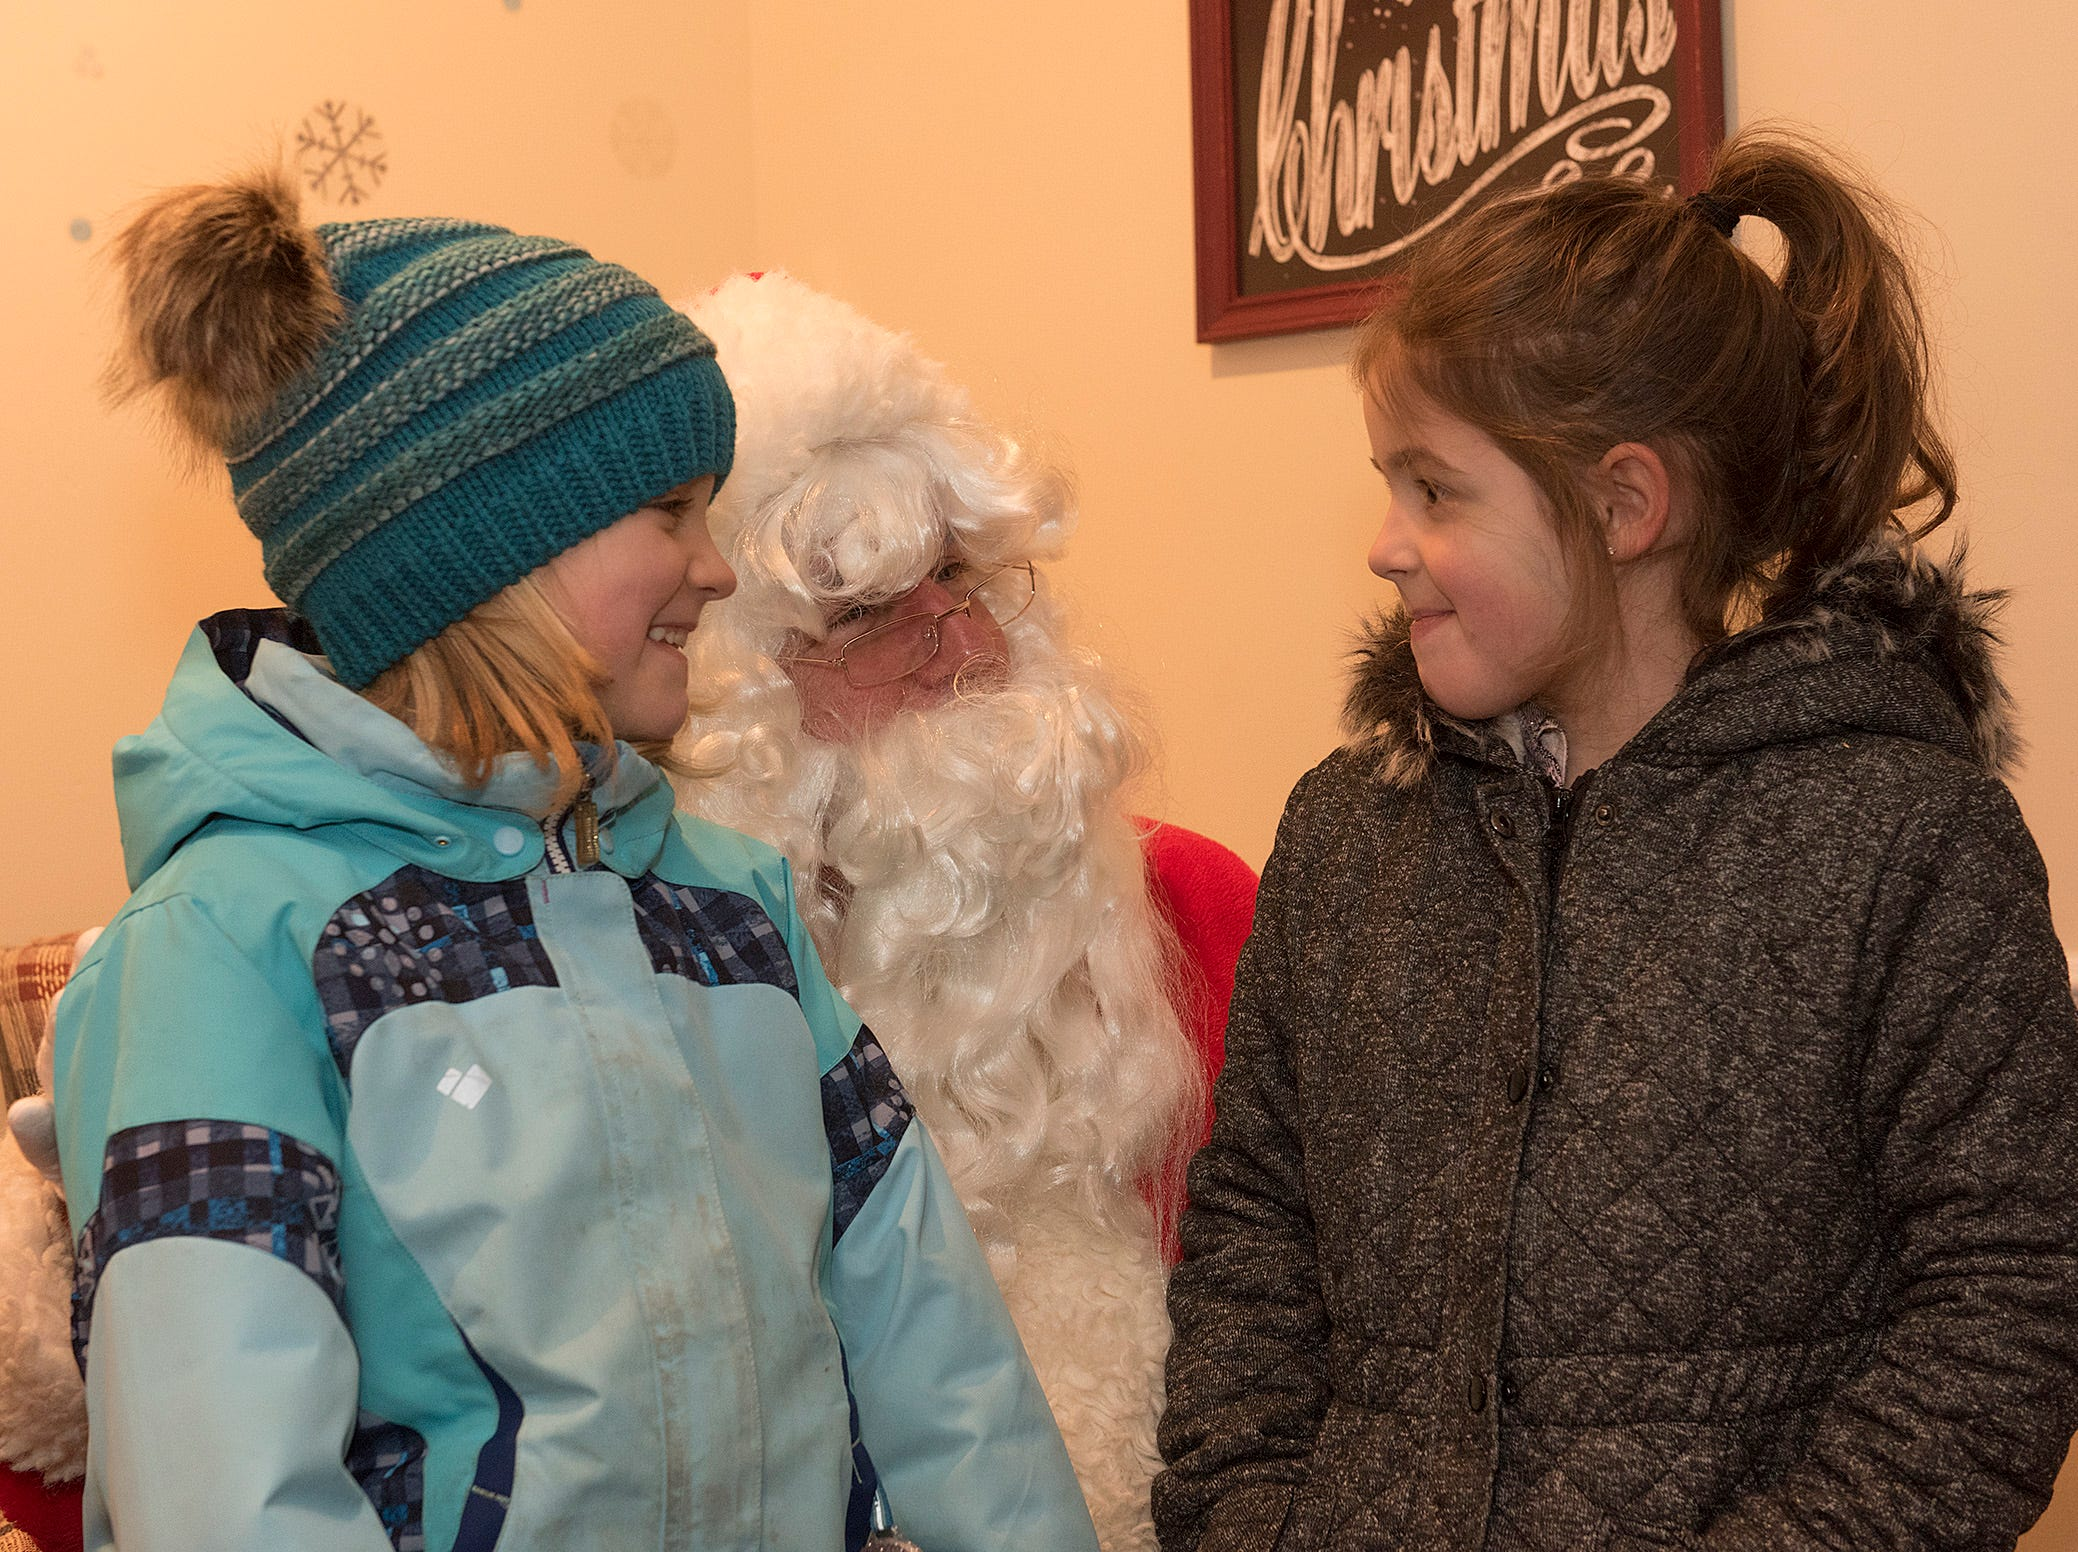 Caire Pryce and Brenna Hayward, both 6 years old, spend some time with Santa Claus.